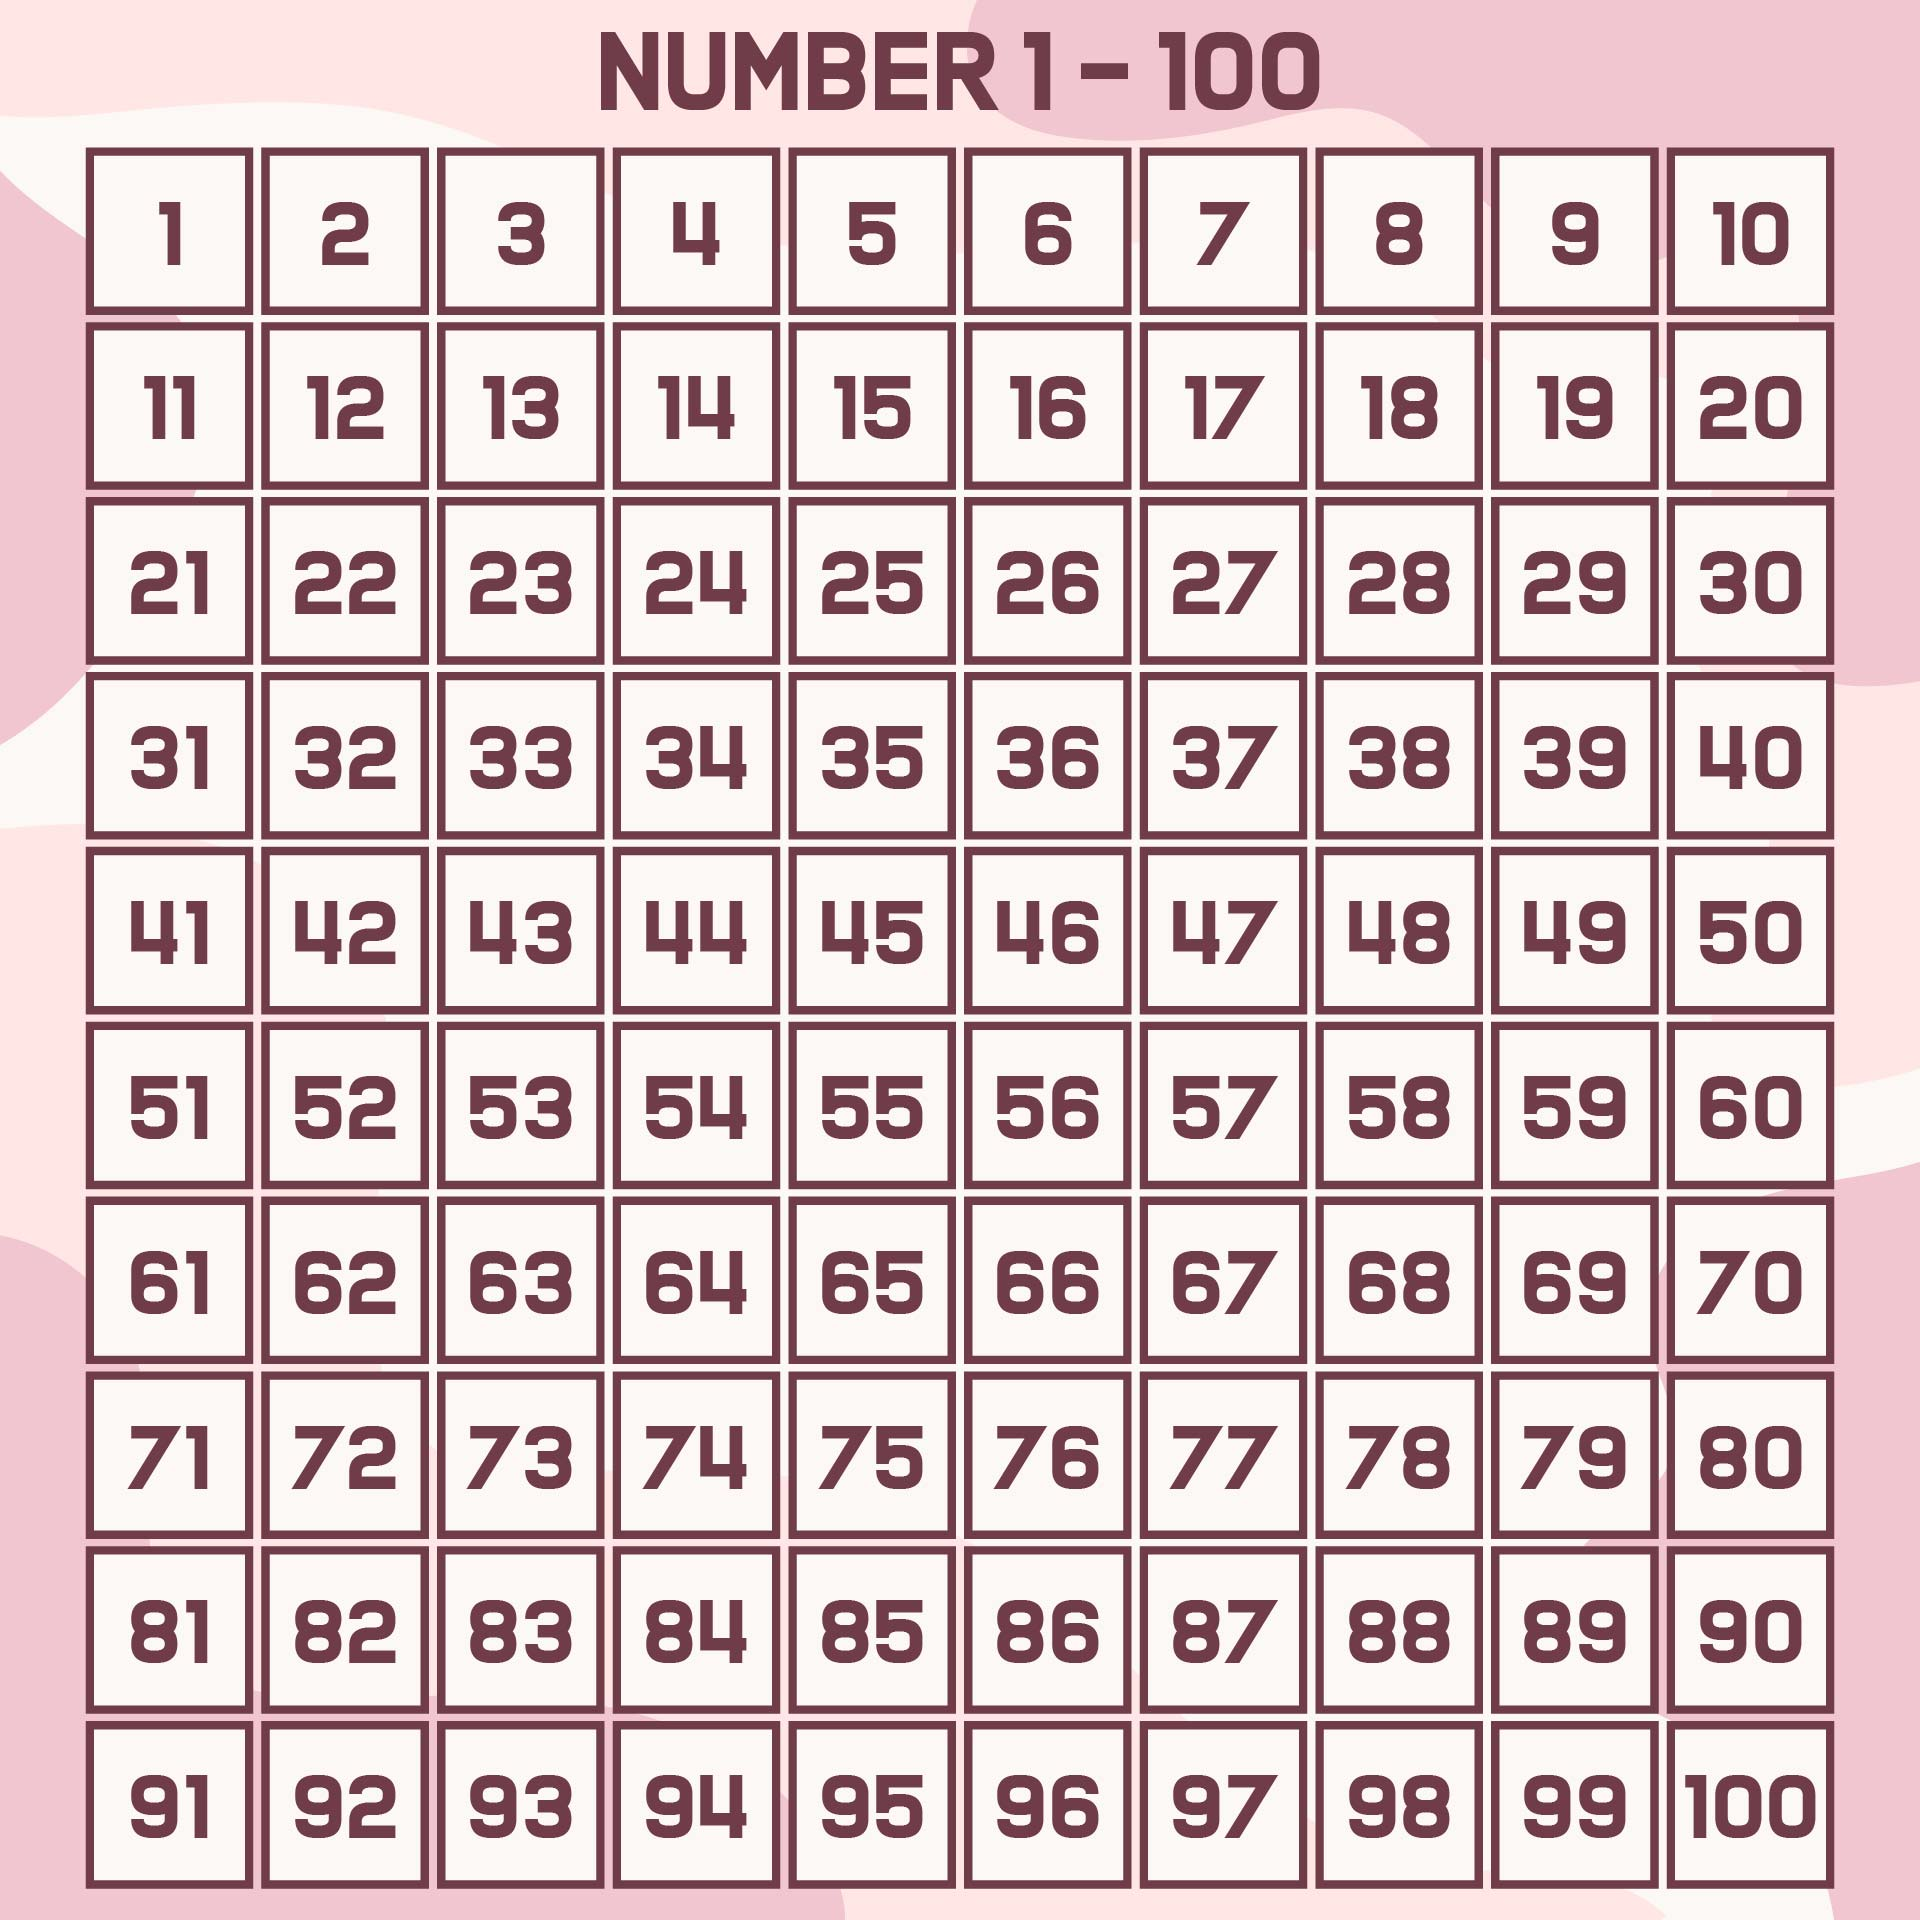 Number Chart 1 100 Printable - Coffemix